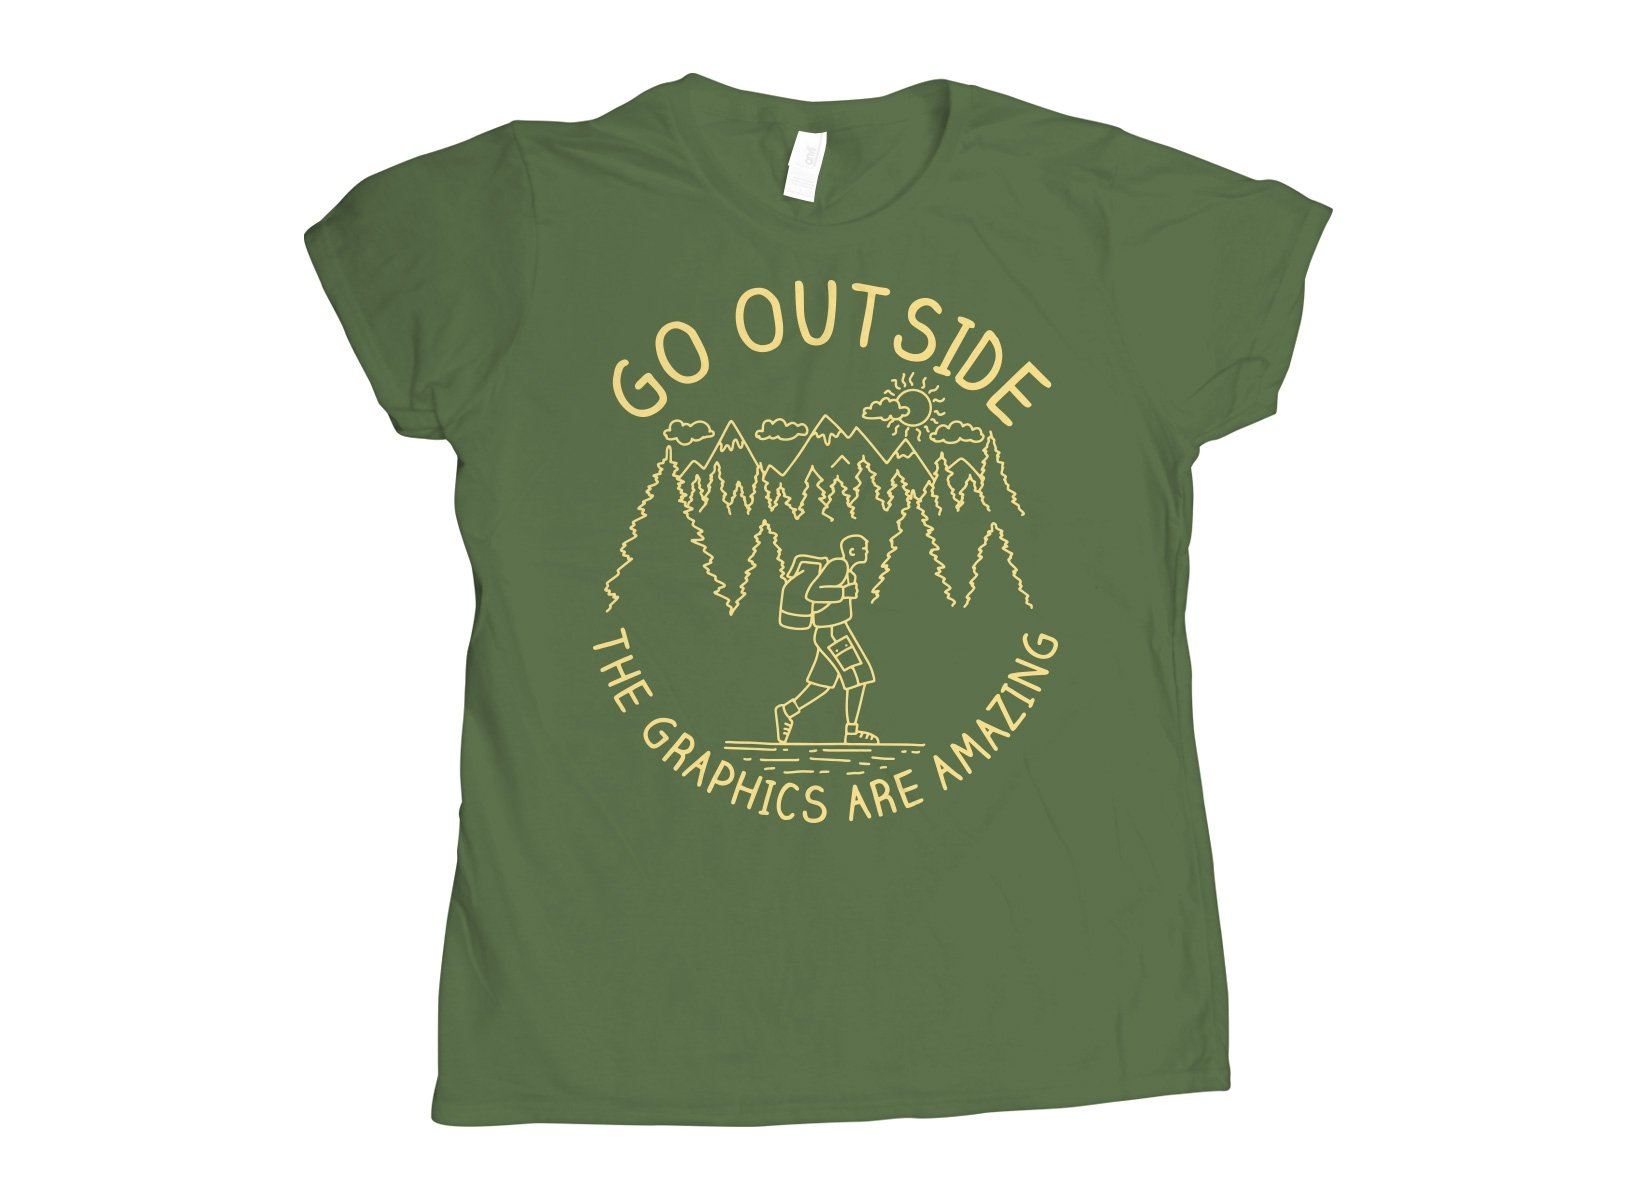 Go Outside The Graphics Are Amazing on Womens T-Shirt